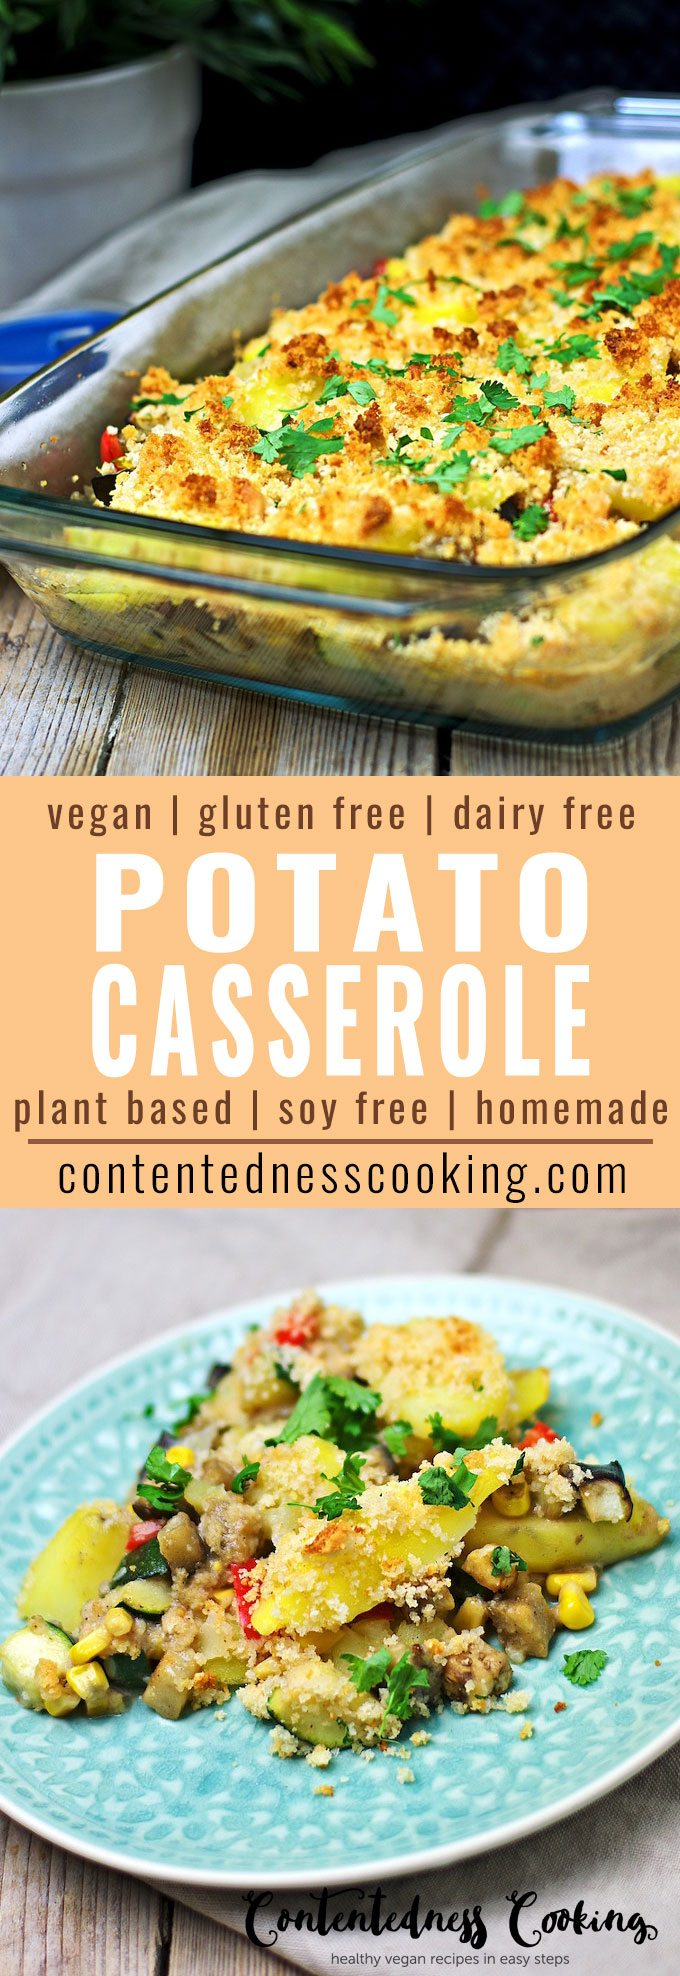 Vegan Potato Casserole | #vegan #glutenfree #contentednesscooking #dairyfree #plantbased #soyfree